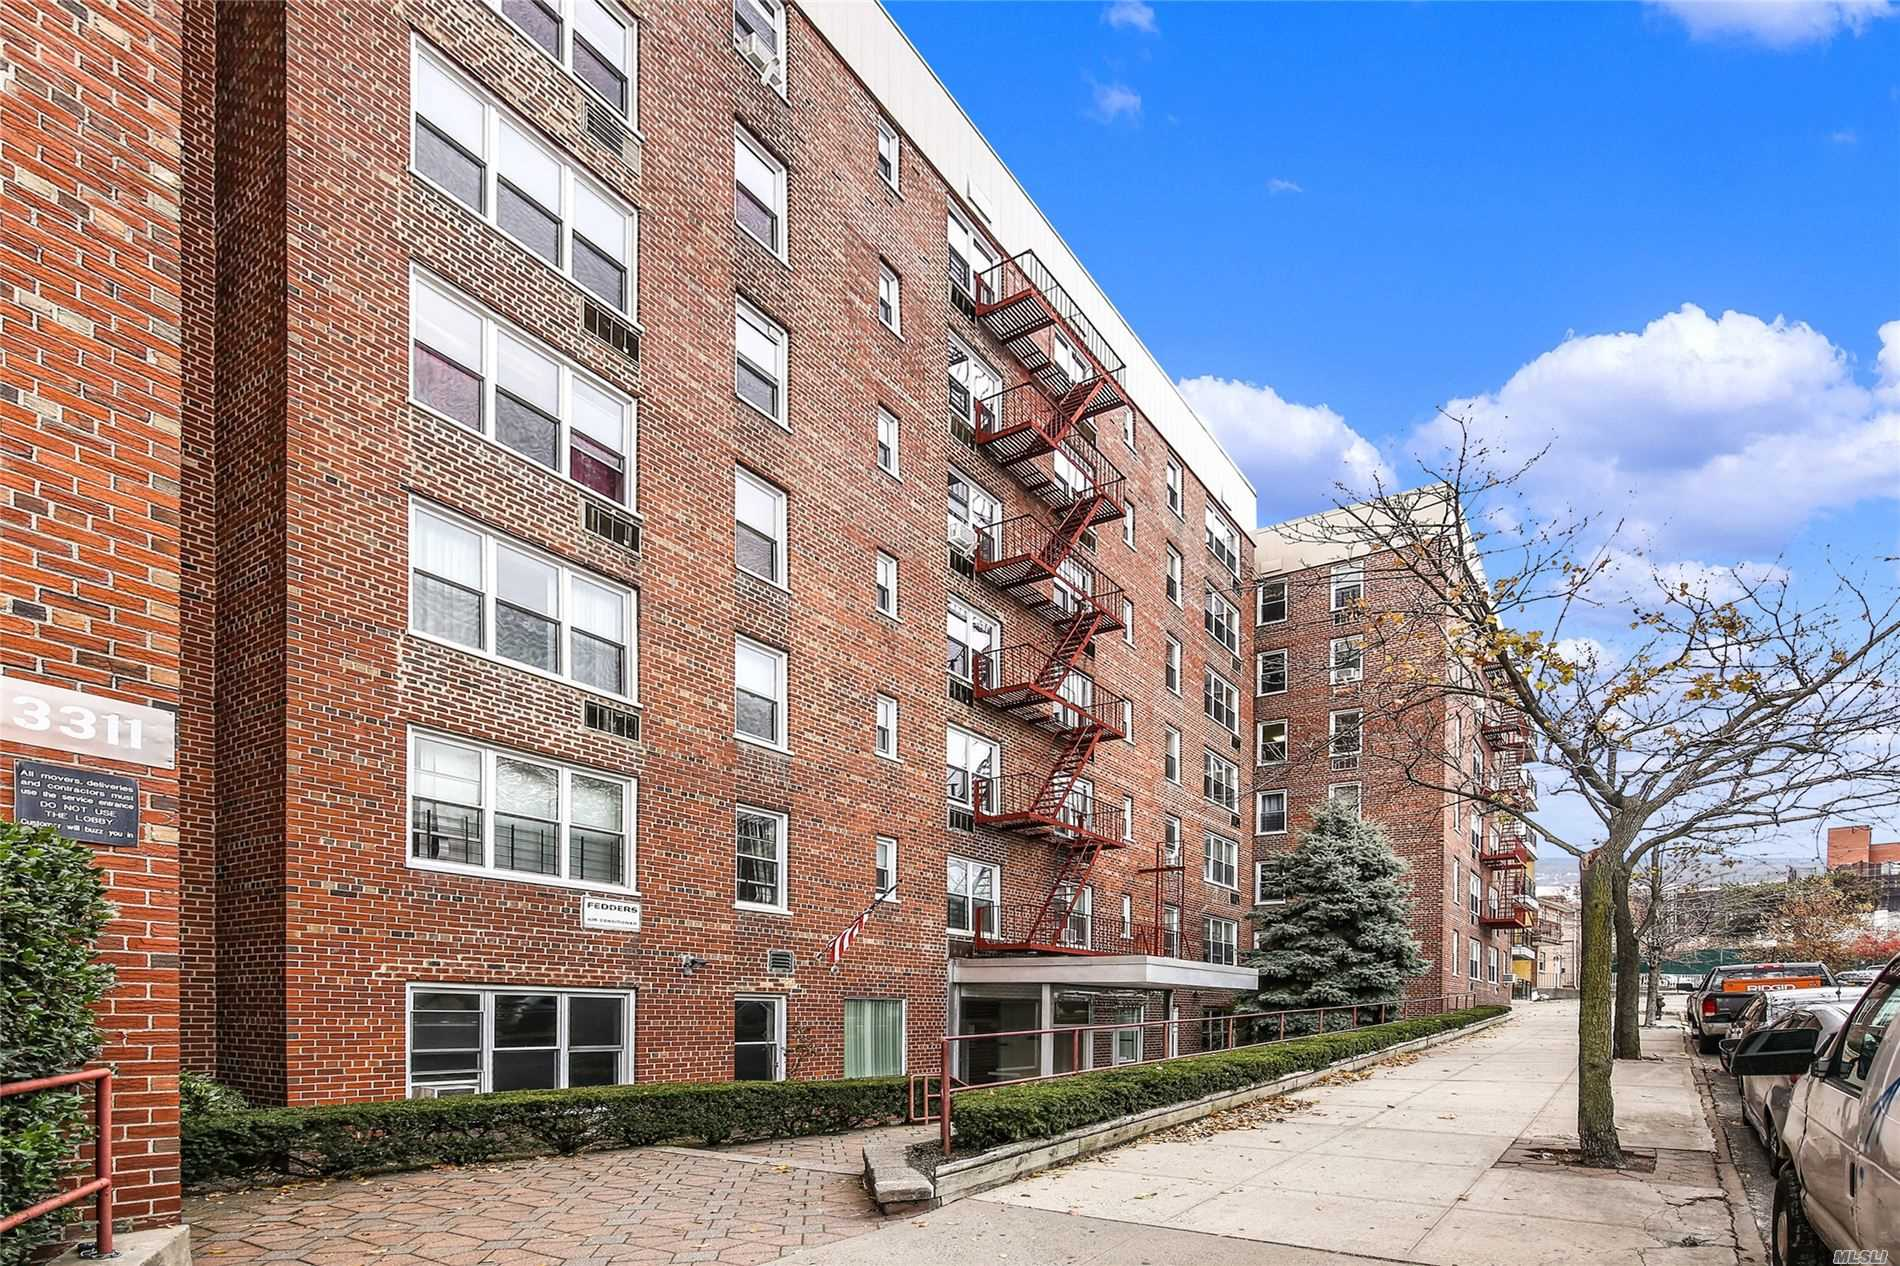 One of Bronx 2 Bedroom Homes for Sale at 3311 Giles Pl